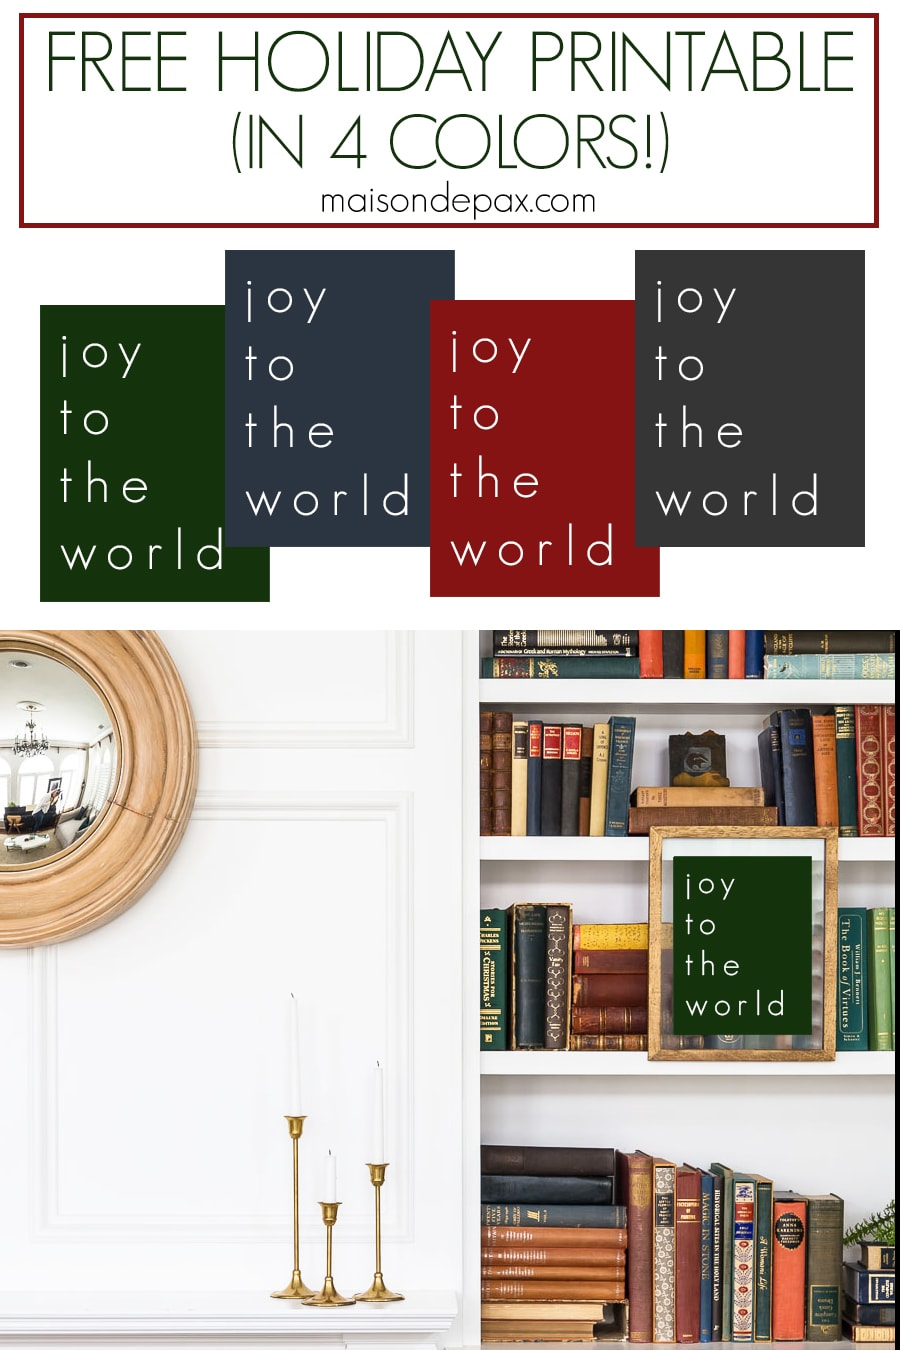 green, blue, red, and gray holiday printables for free | Maison de Pax